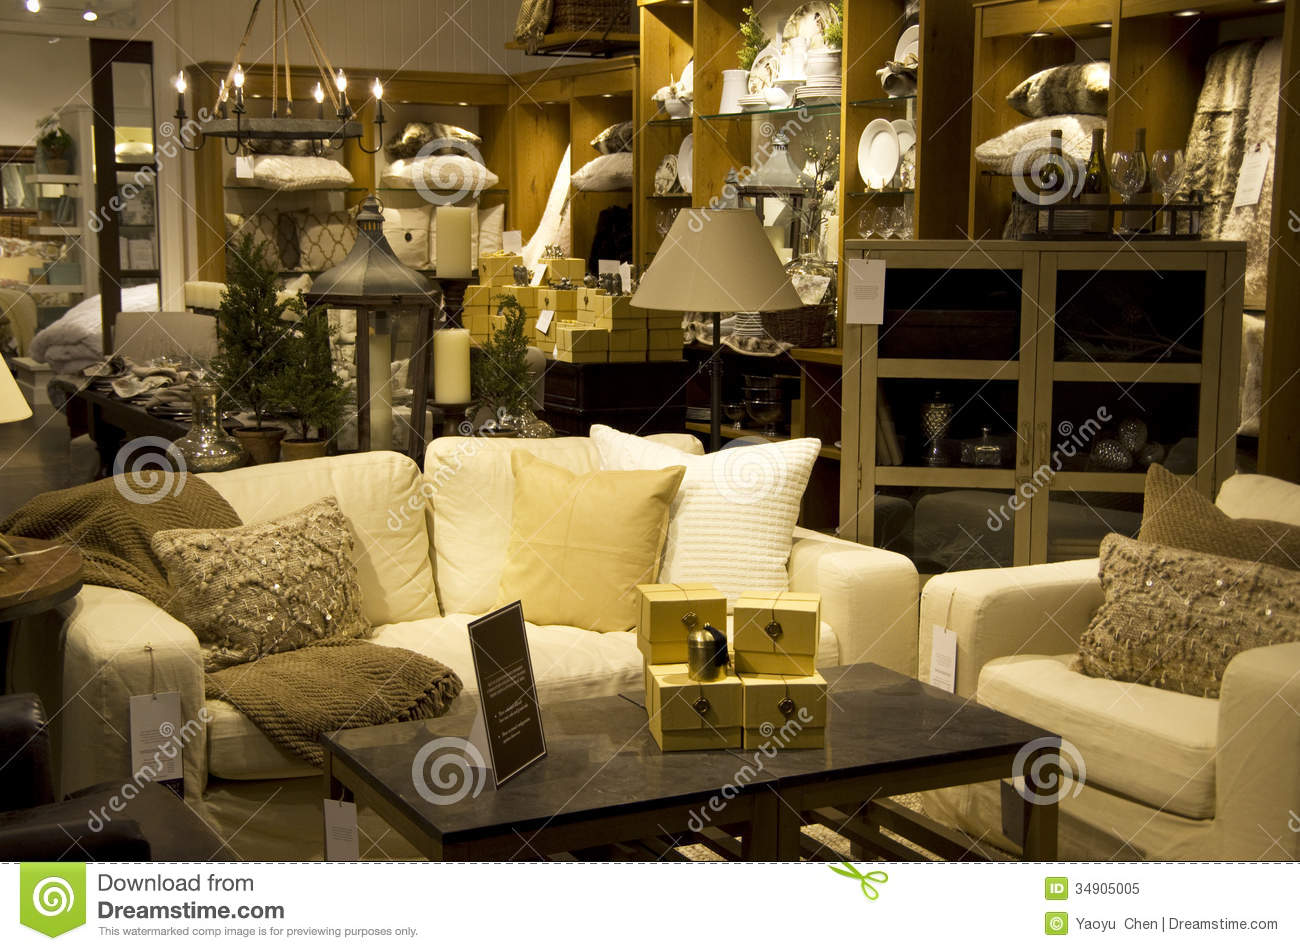 Luxury furniture home decor store royalty free stock photo for Home decor furnishing